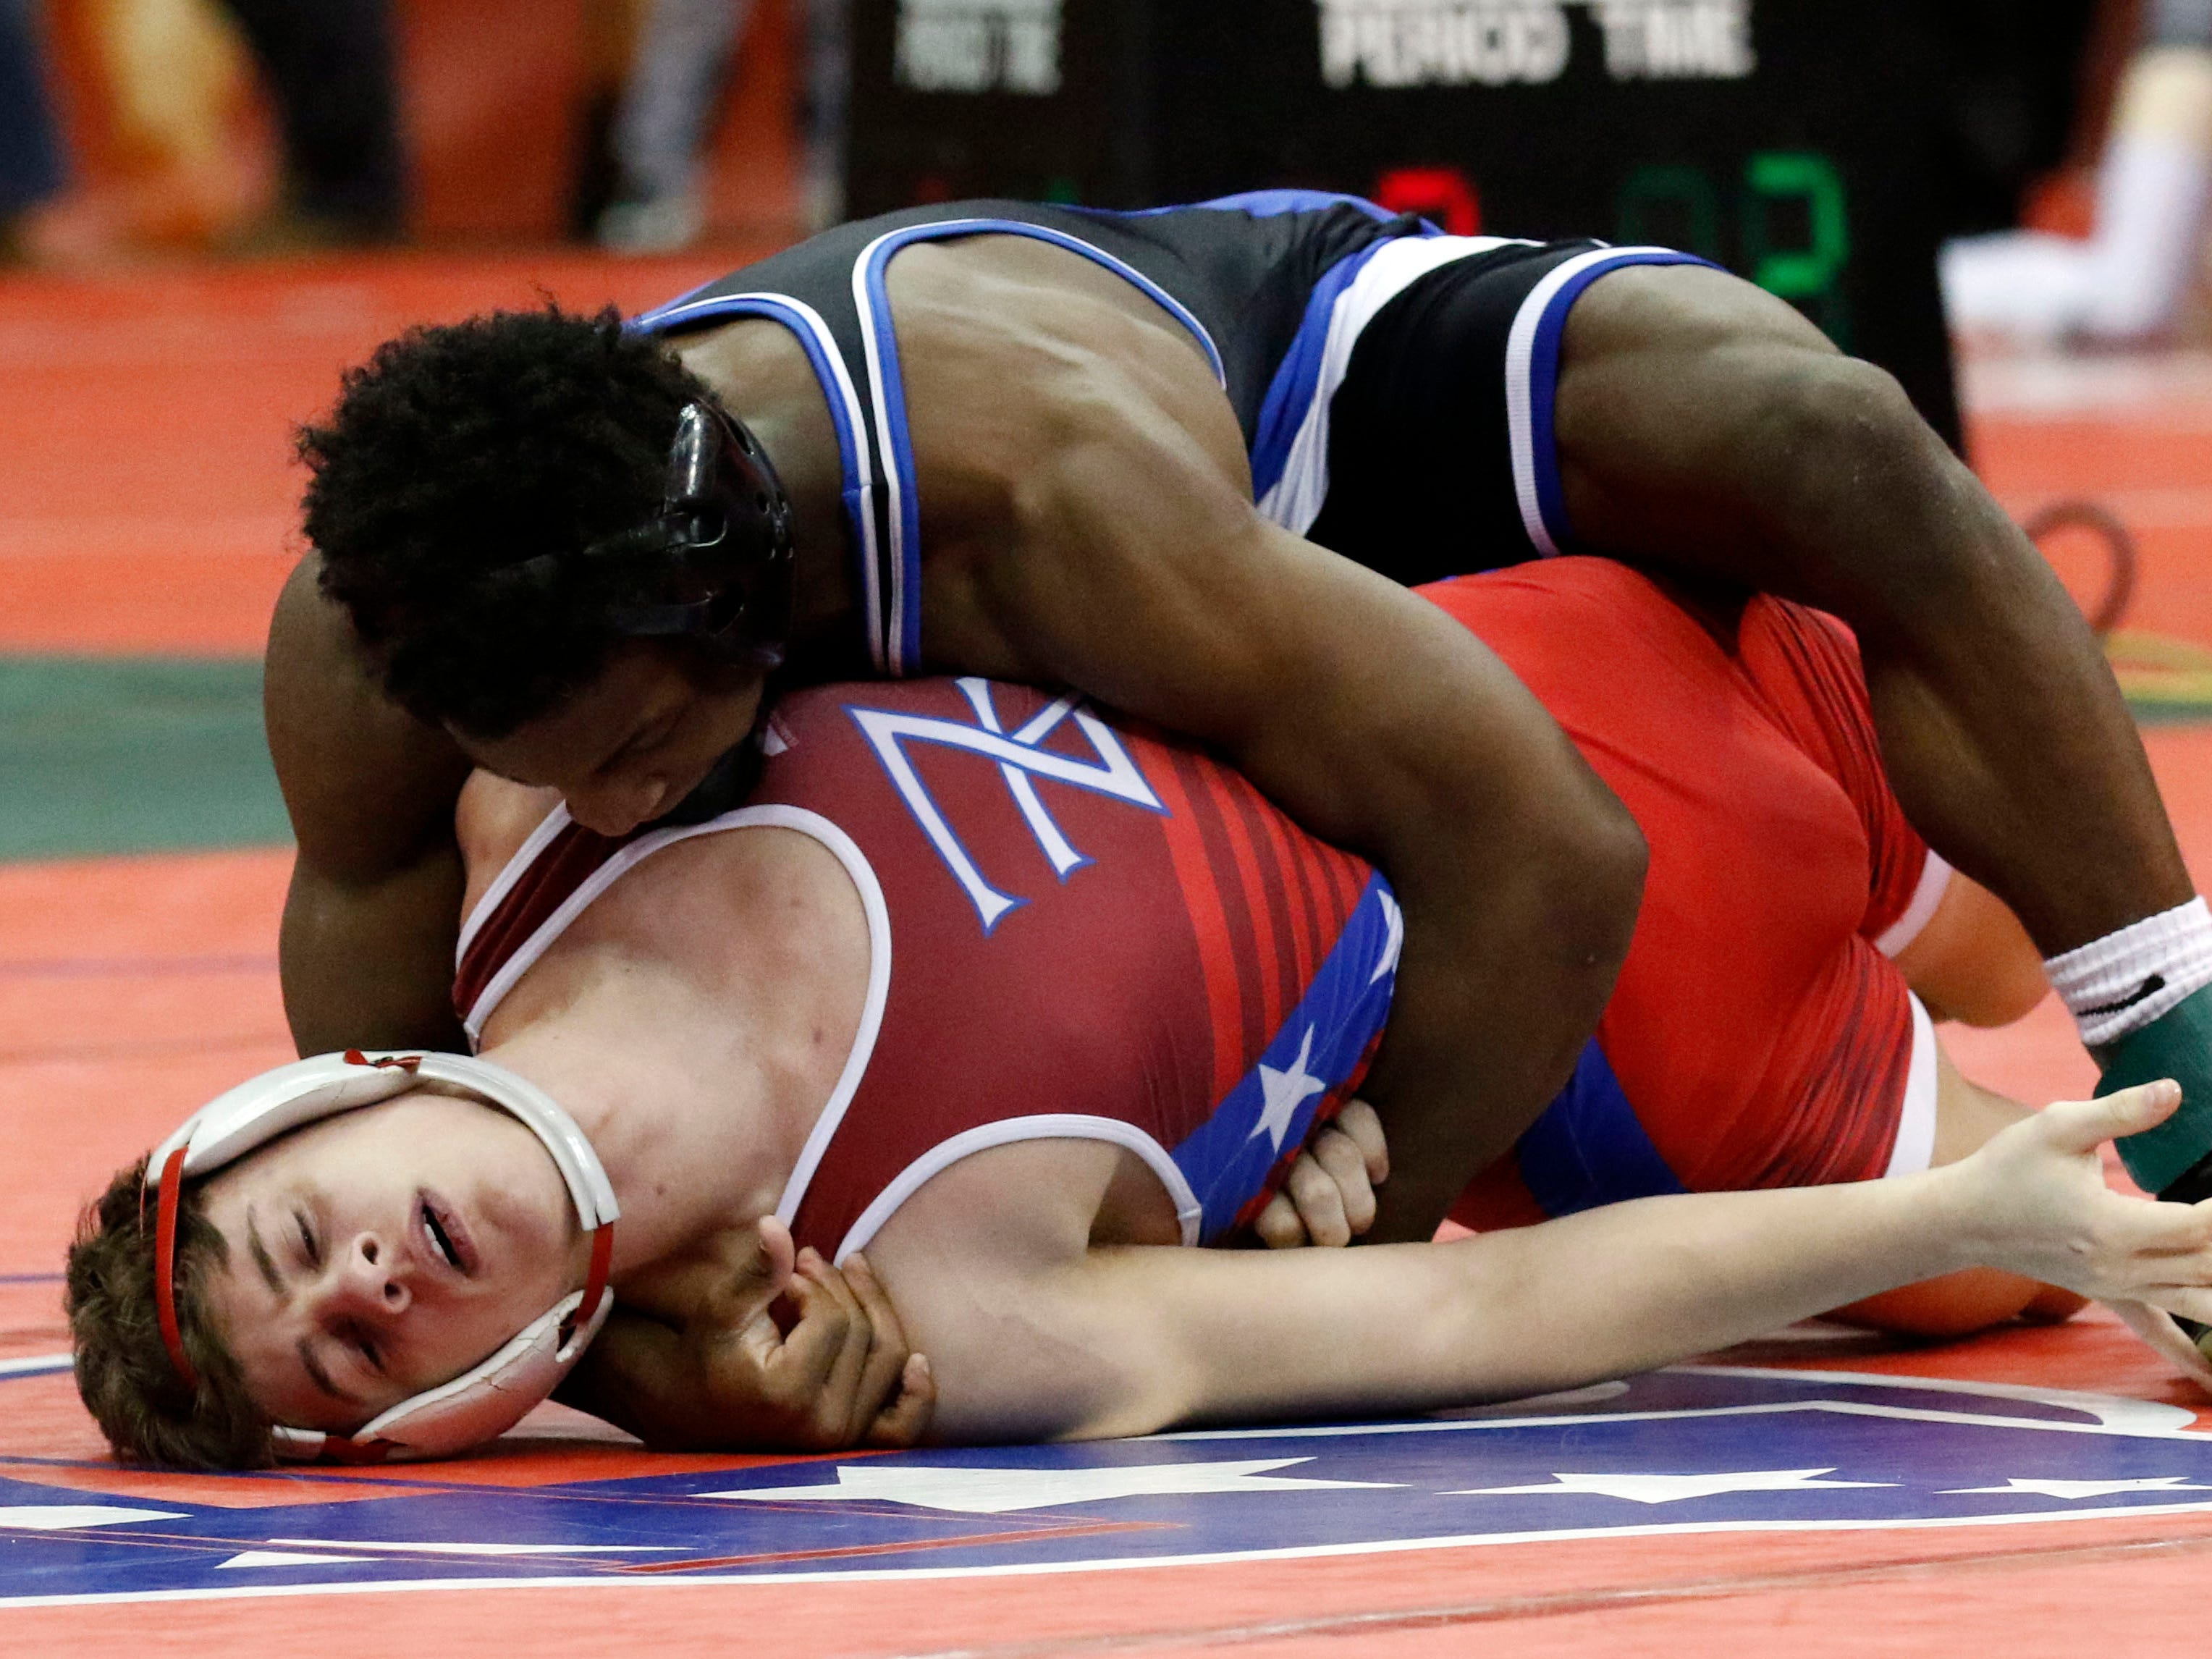 Zane Trace's Jordan Hoselton wrestles Friday, March 8, 2019, during the State Wrestling Tournament at the Jerome Schottenstein Center at Ohio State University in Columbus.